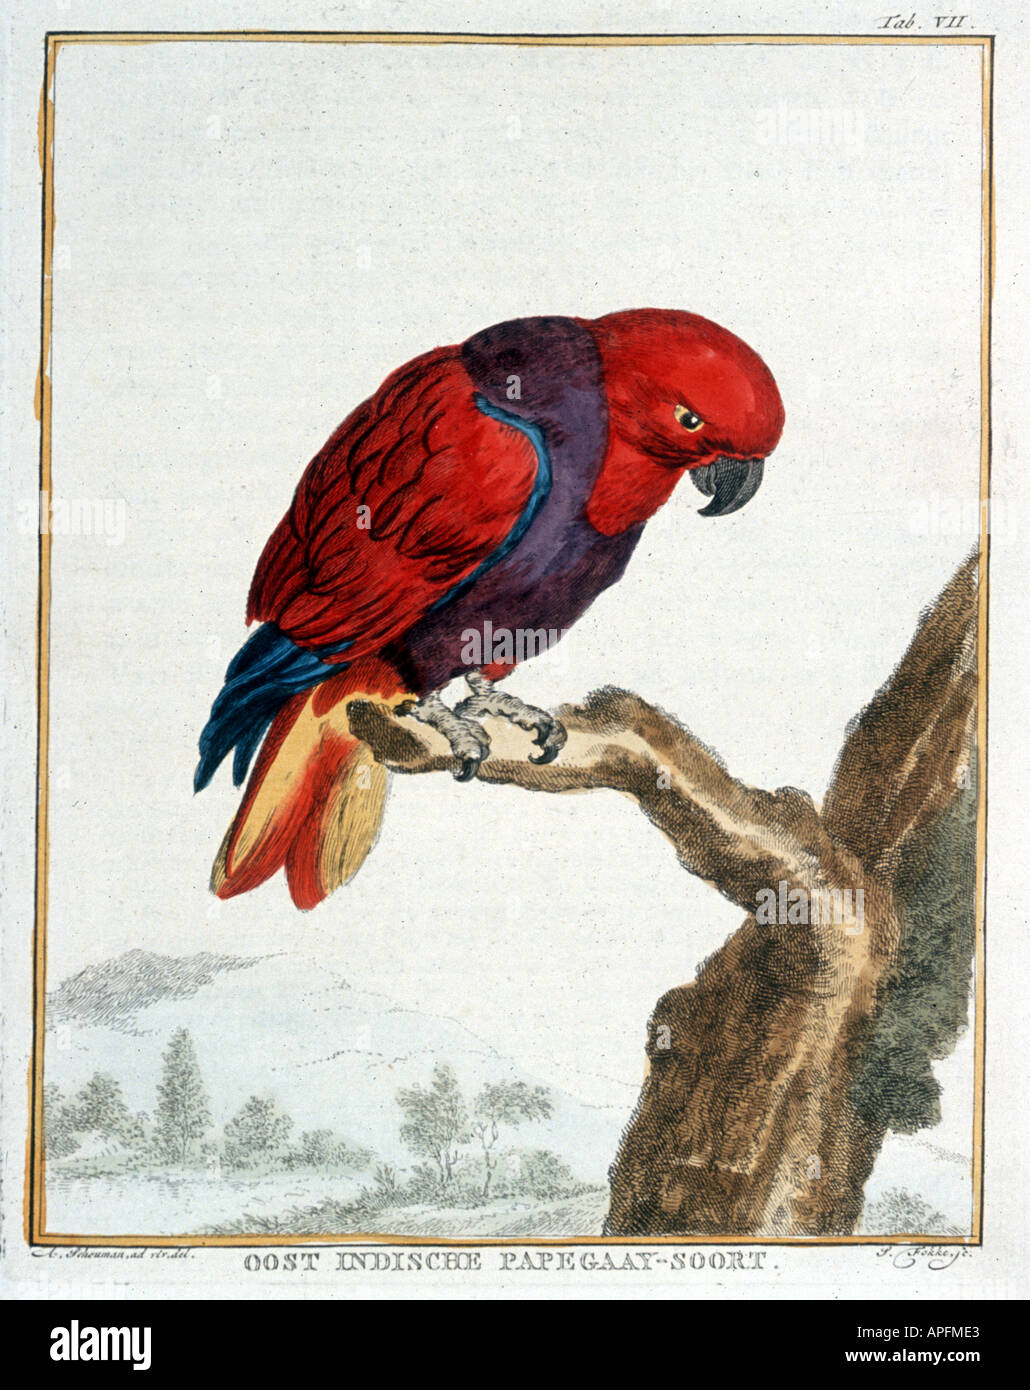 Vosmaer Collection of rare animals quadrupeds birds and serpents from Eastern and Western India - Stock Image